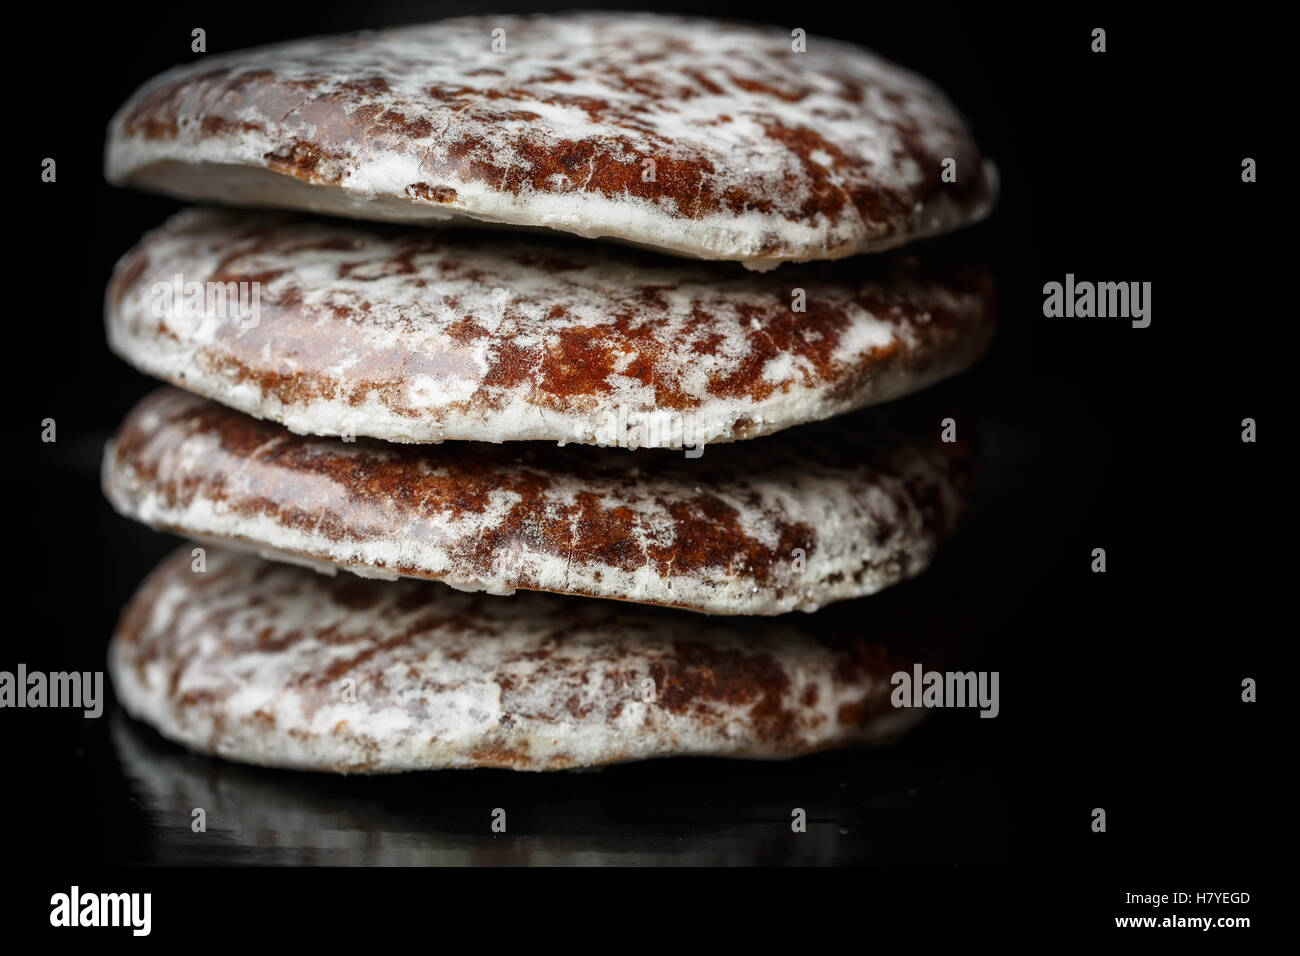 Round Lebkuchen on black background - Stock Image